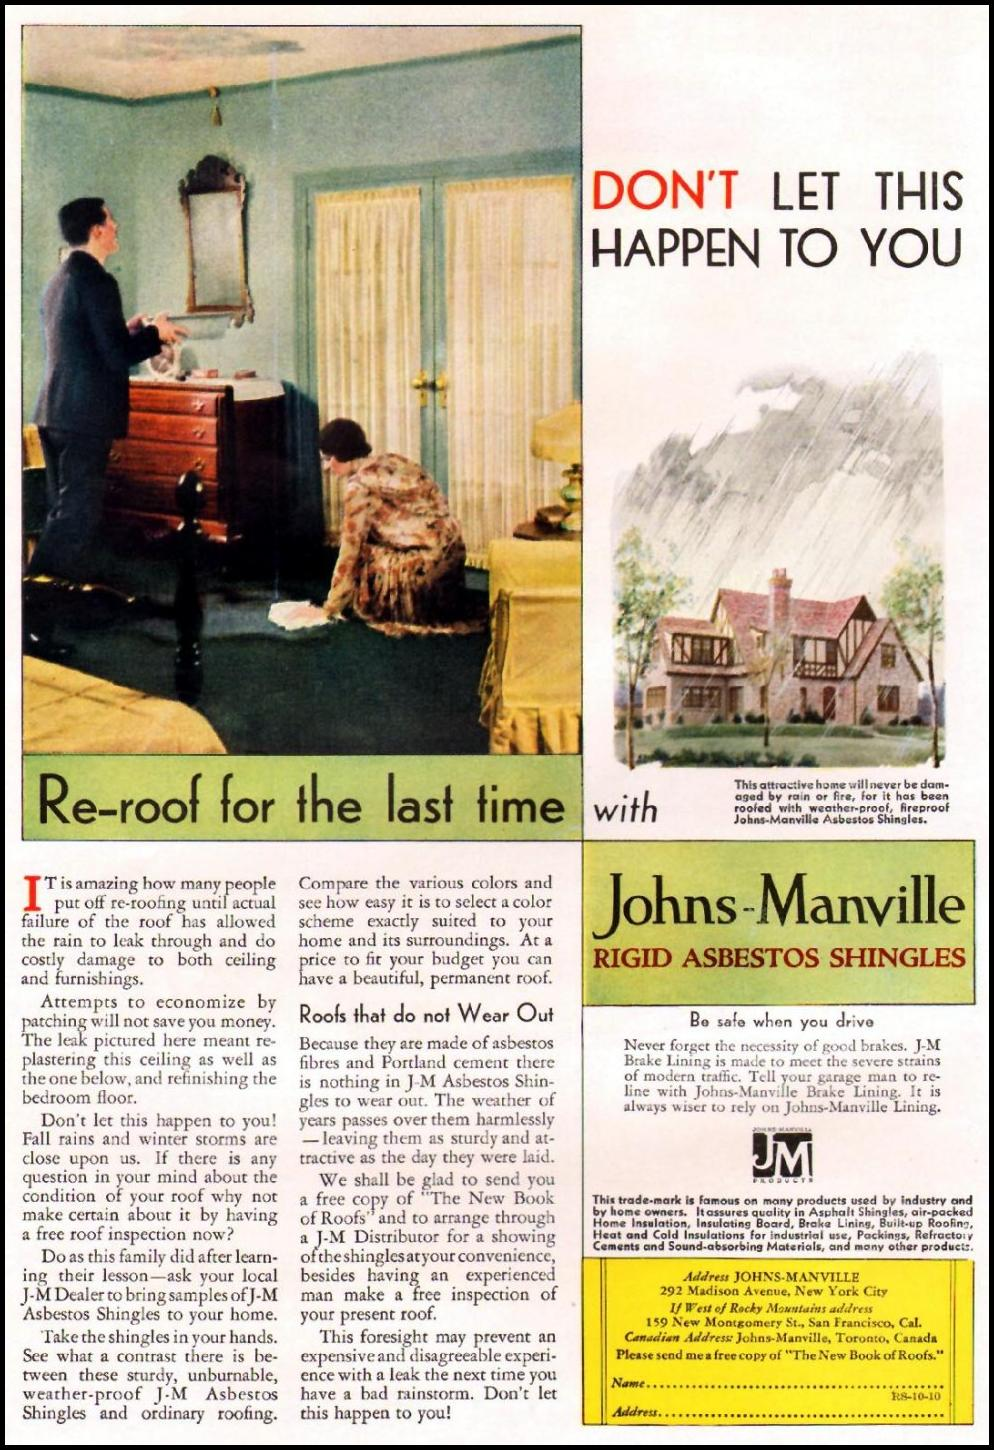 JOHNS-MANVILLE RIGID ASBESTOS SHINGLES BETTER HOMES AND GARDENS 10/01/1930 p. 48